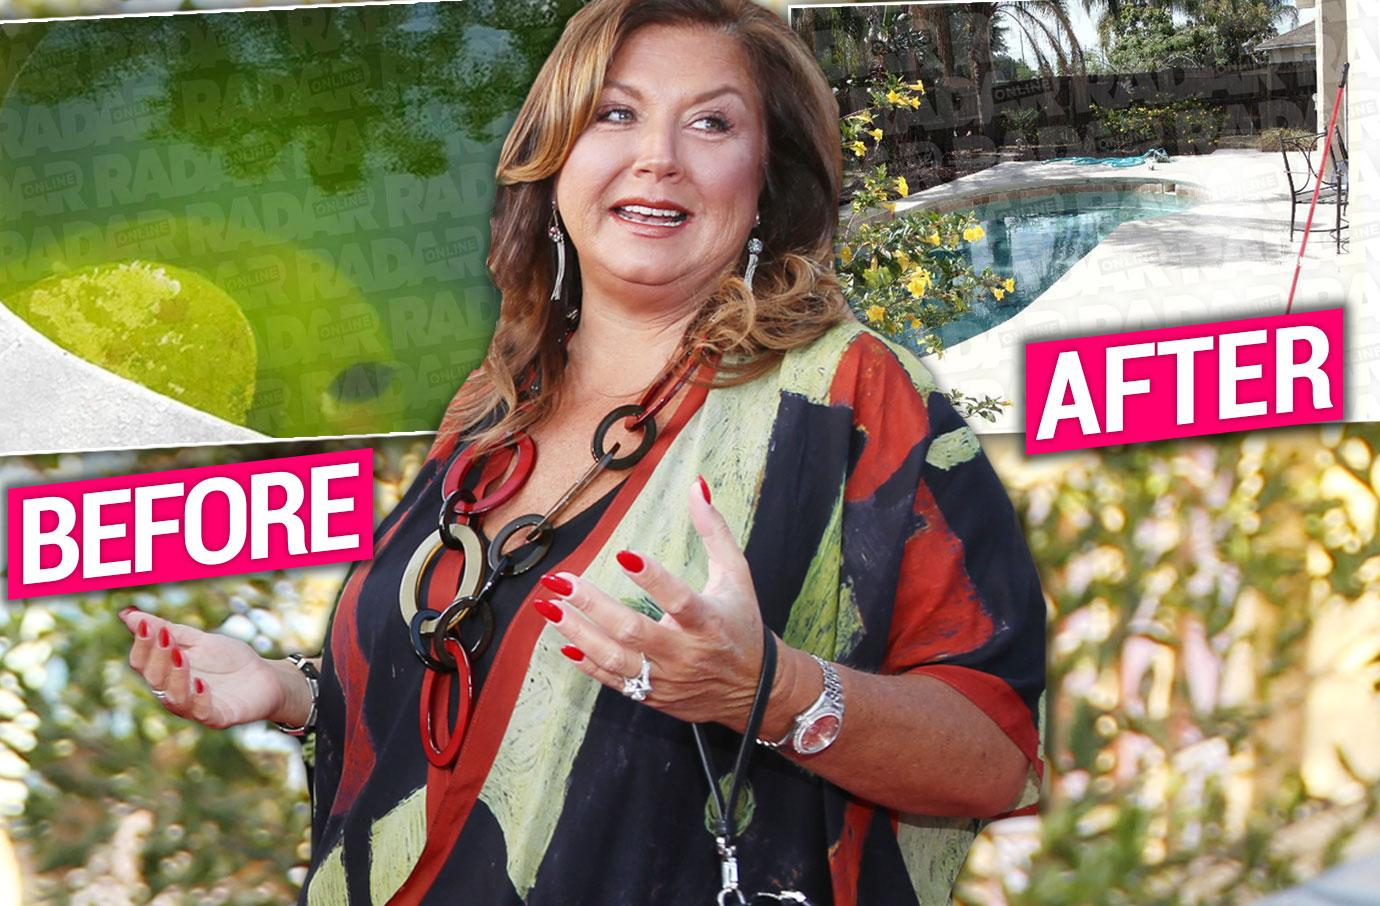 abby lee miller house of horrors dirty pool case closed